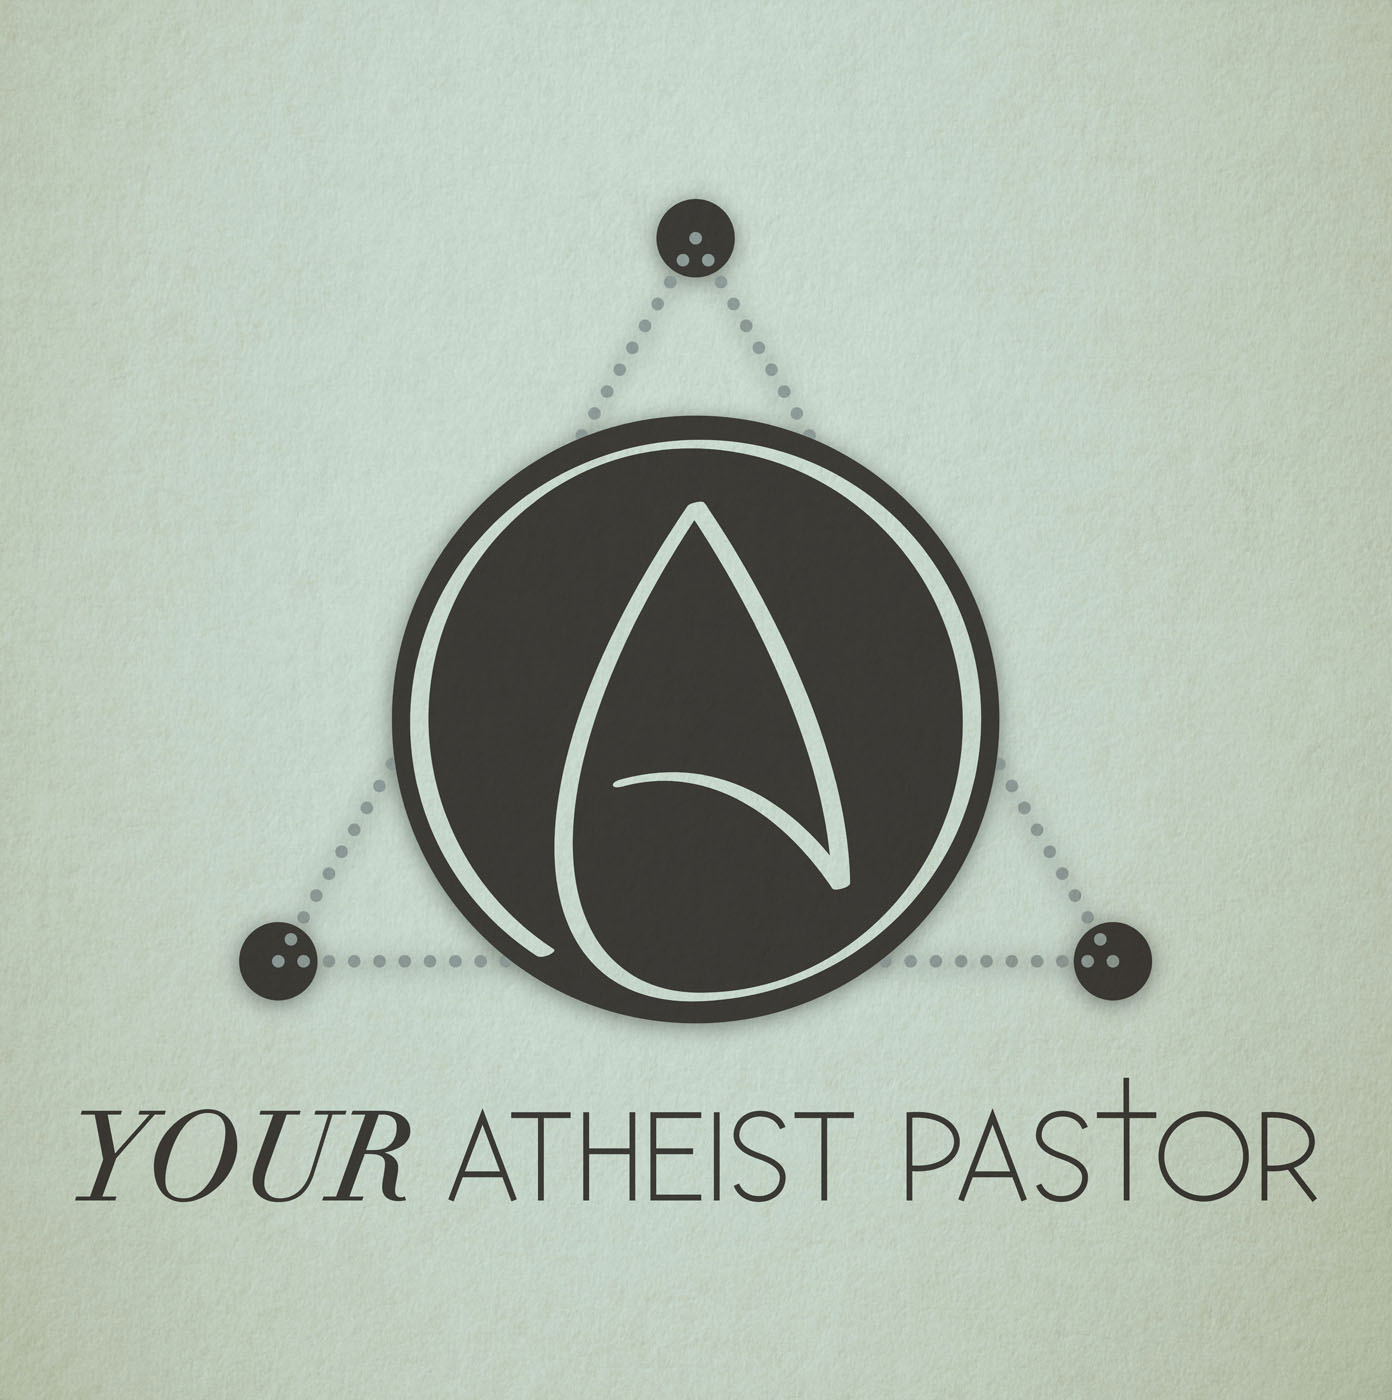 Your Atheist Pastor